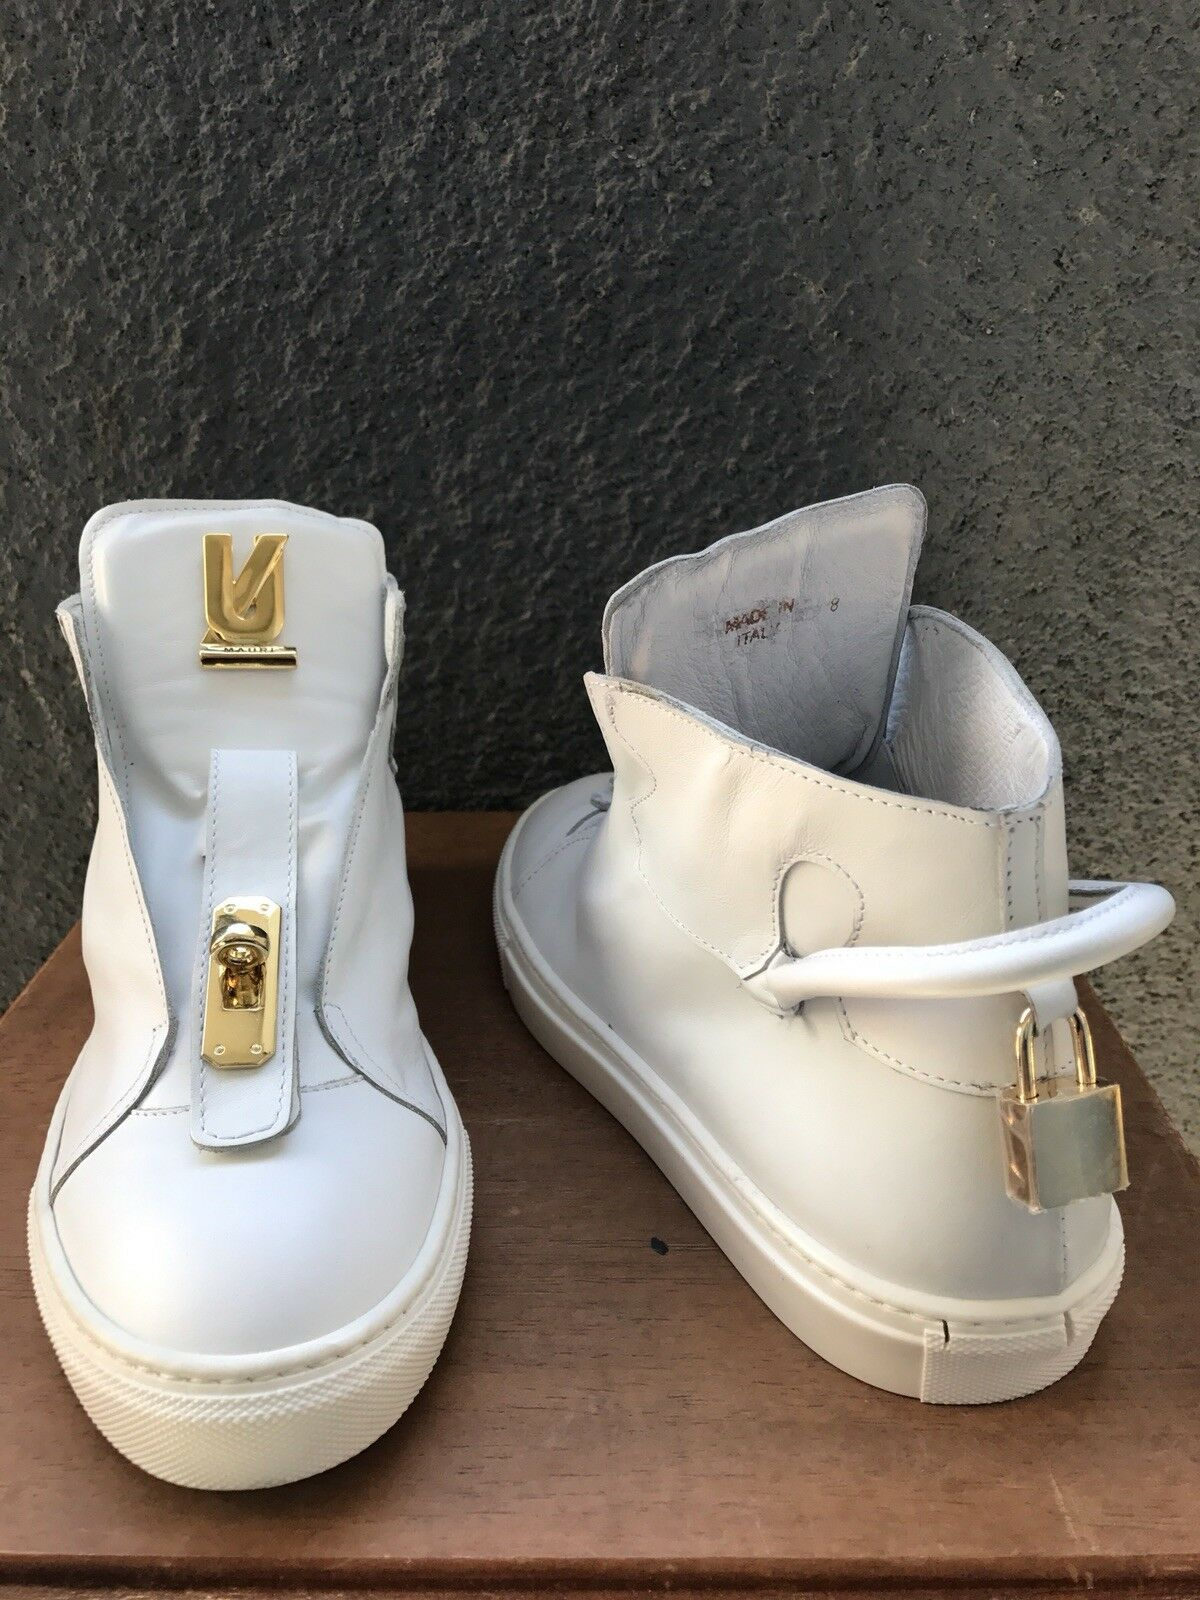 Made in Italy Urban Legend and Mauri Shoes Sneakers new in box.